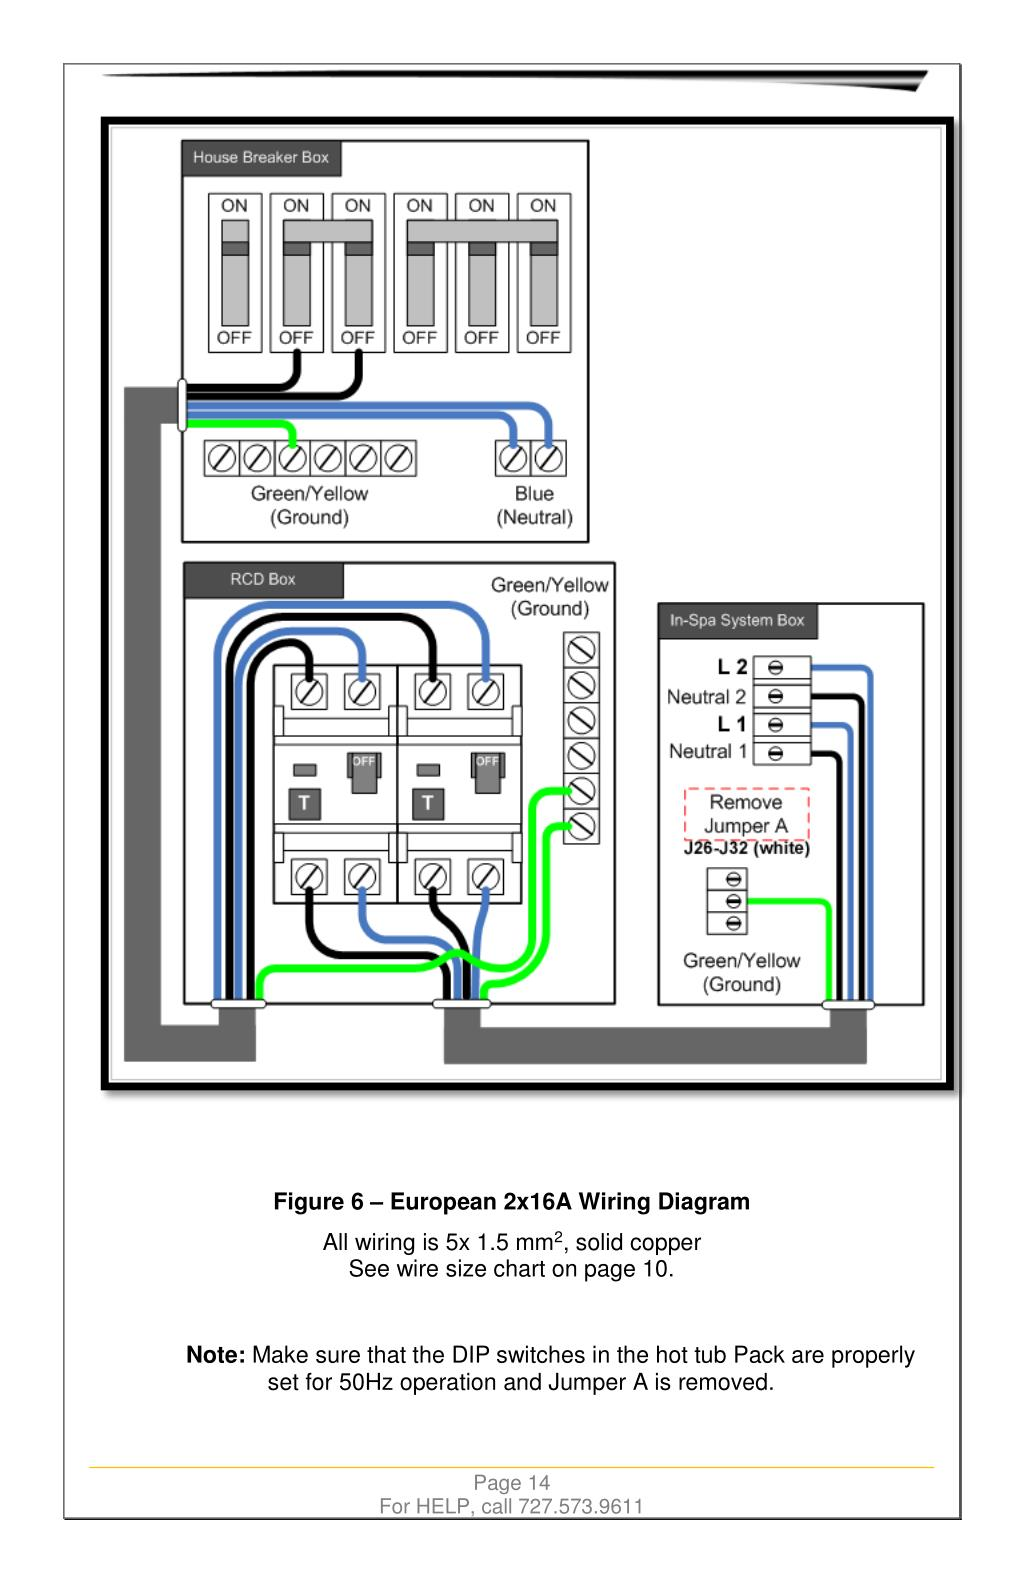 Hot Tub Wiring Code